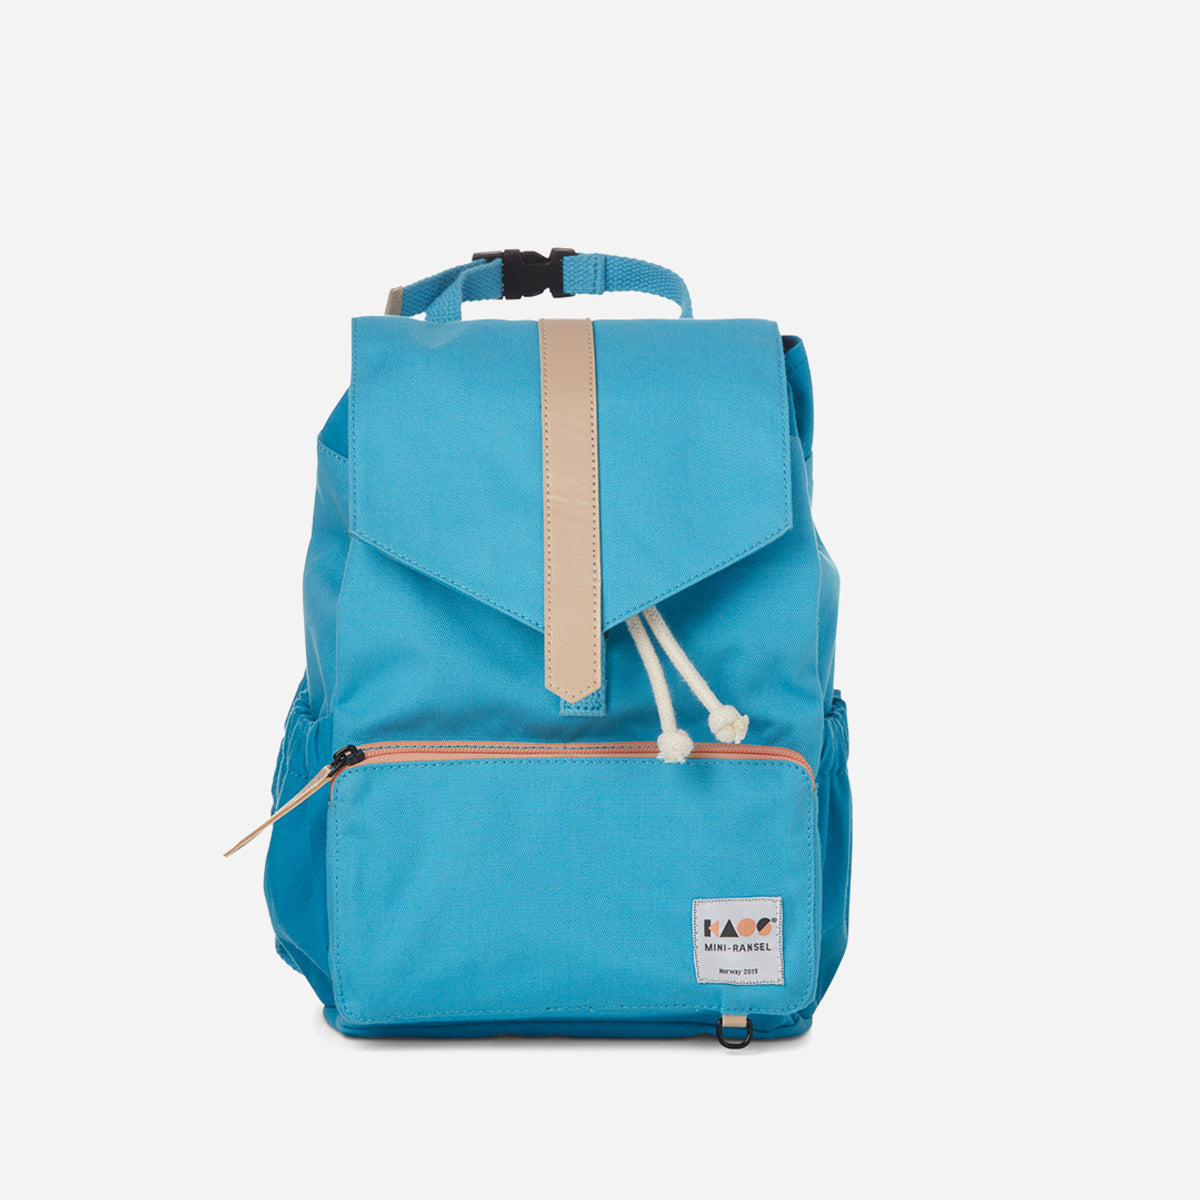 Blue Mini Ransel Kids Backpack